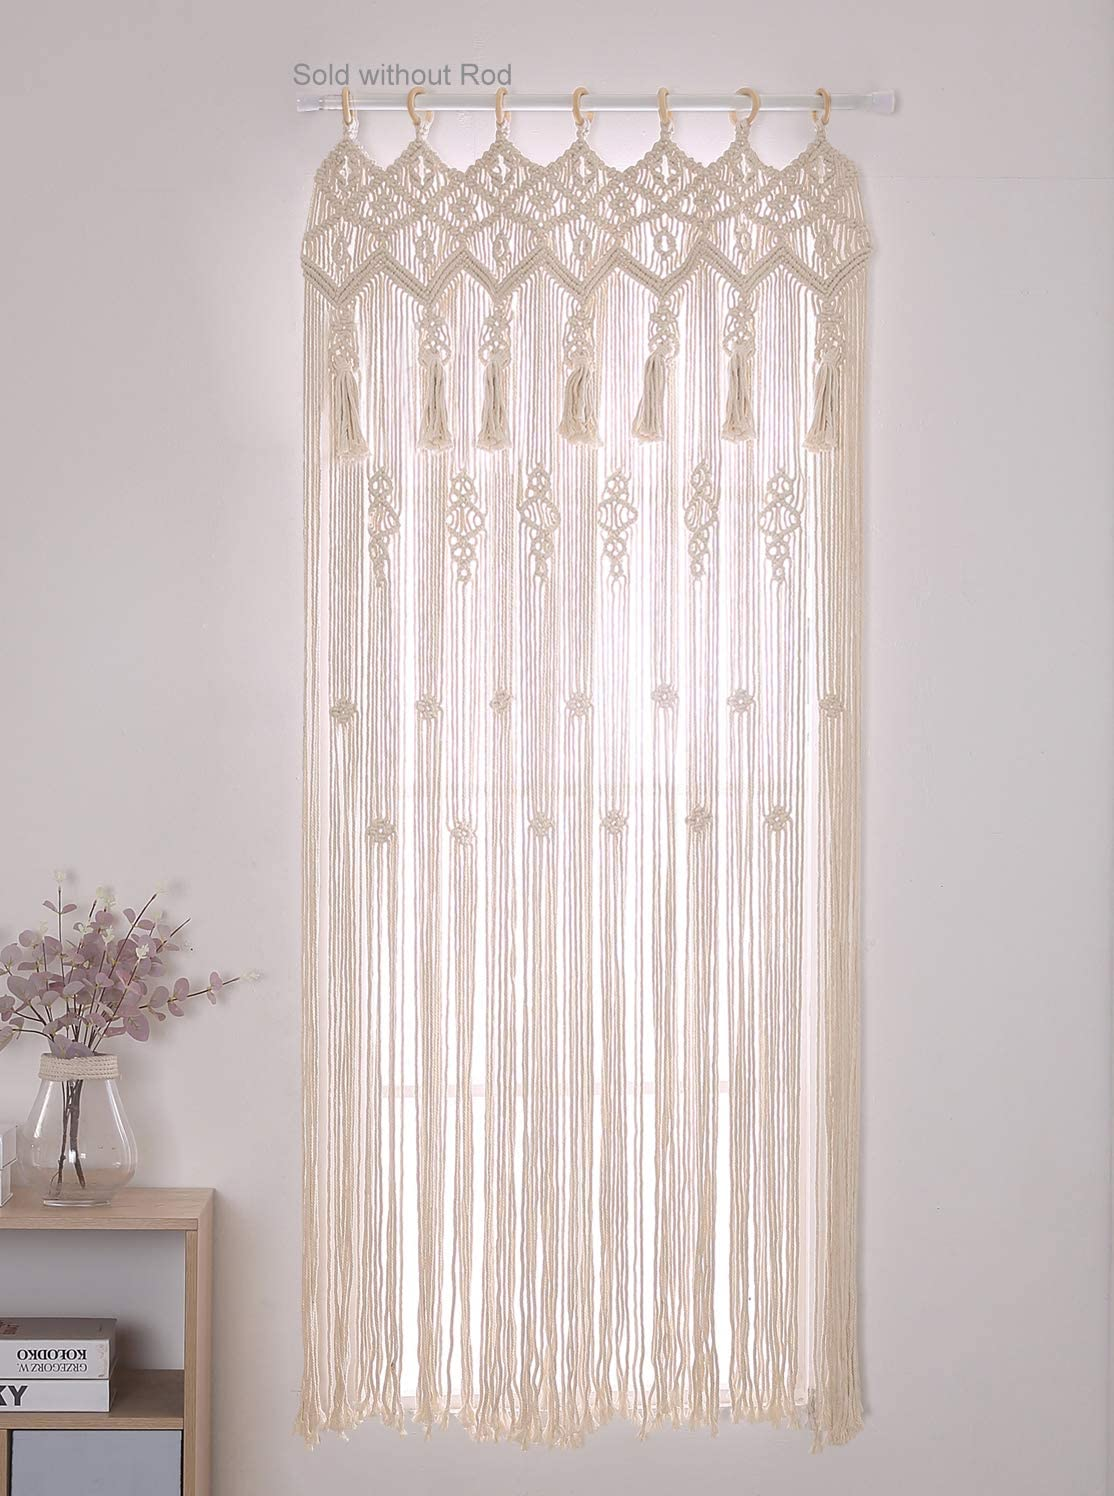 Deal of the week: Achart Macrame Curtain Wall Hanging Tapestry Doorway Window Curtains Window Curtain Panels Handwoven Boho Wedding Backdrop Arch Closet Room Divider Boho Wall Decor Without Rod Beige